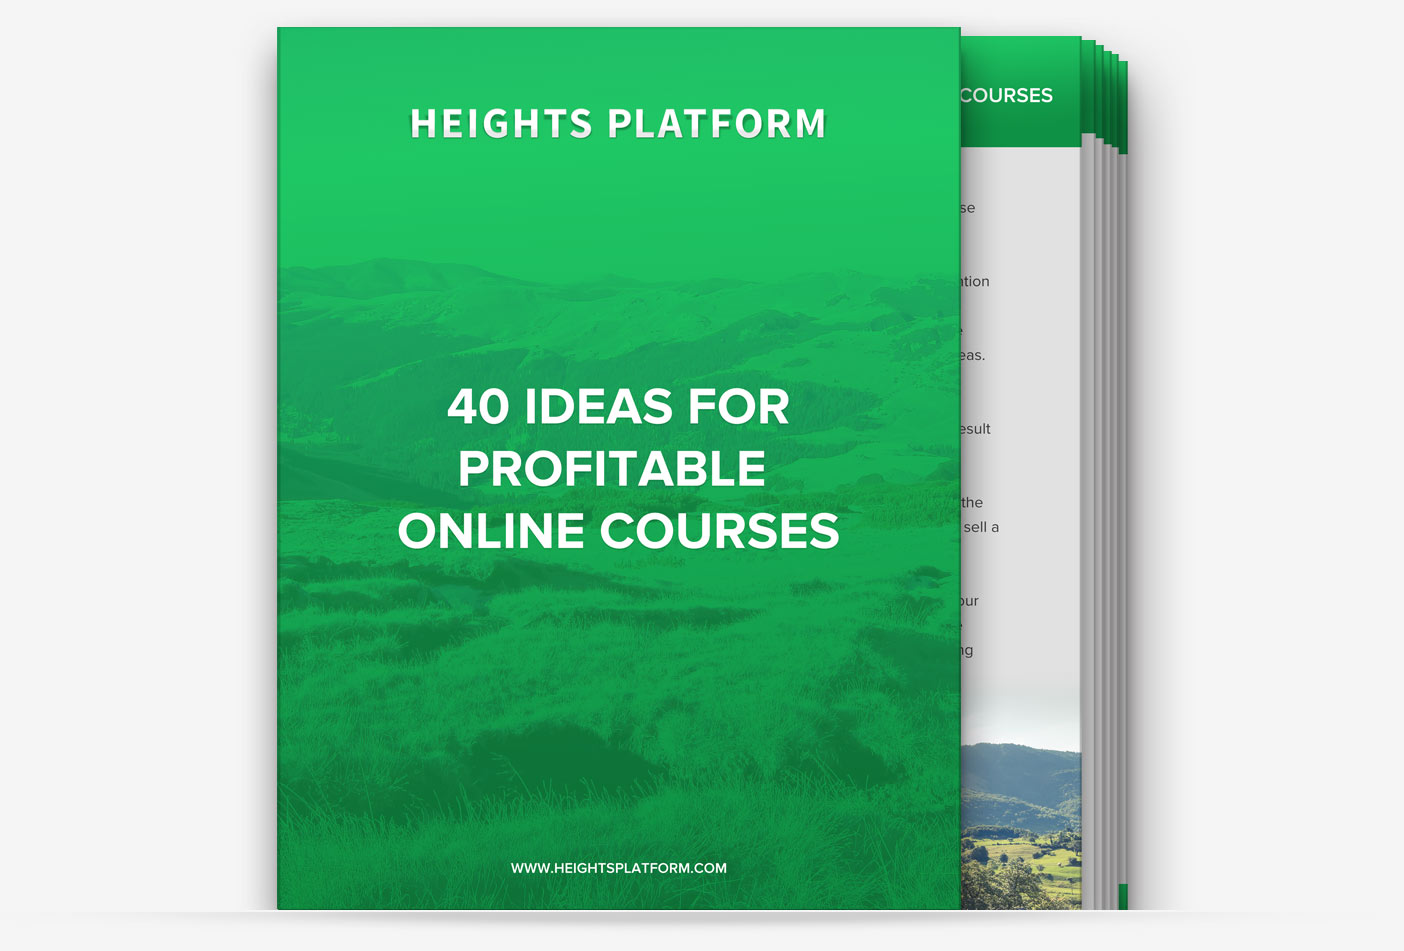 Heights Platform 40 Ideas for Profitable Online Courses Guide